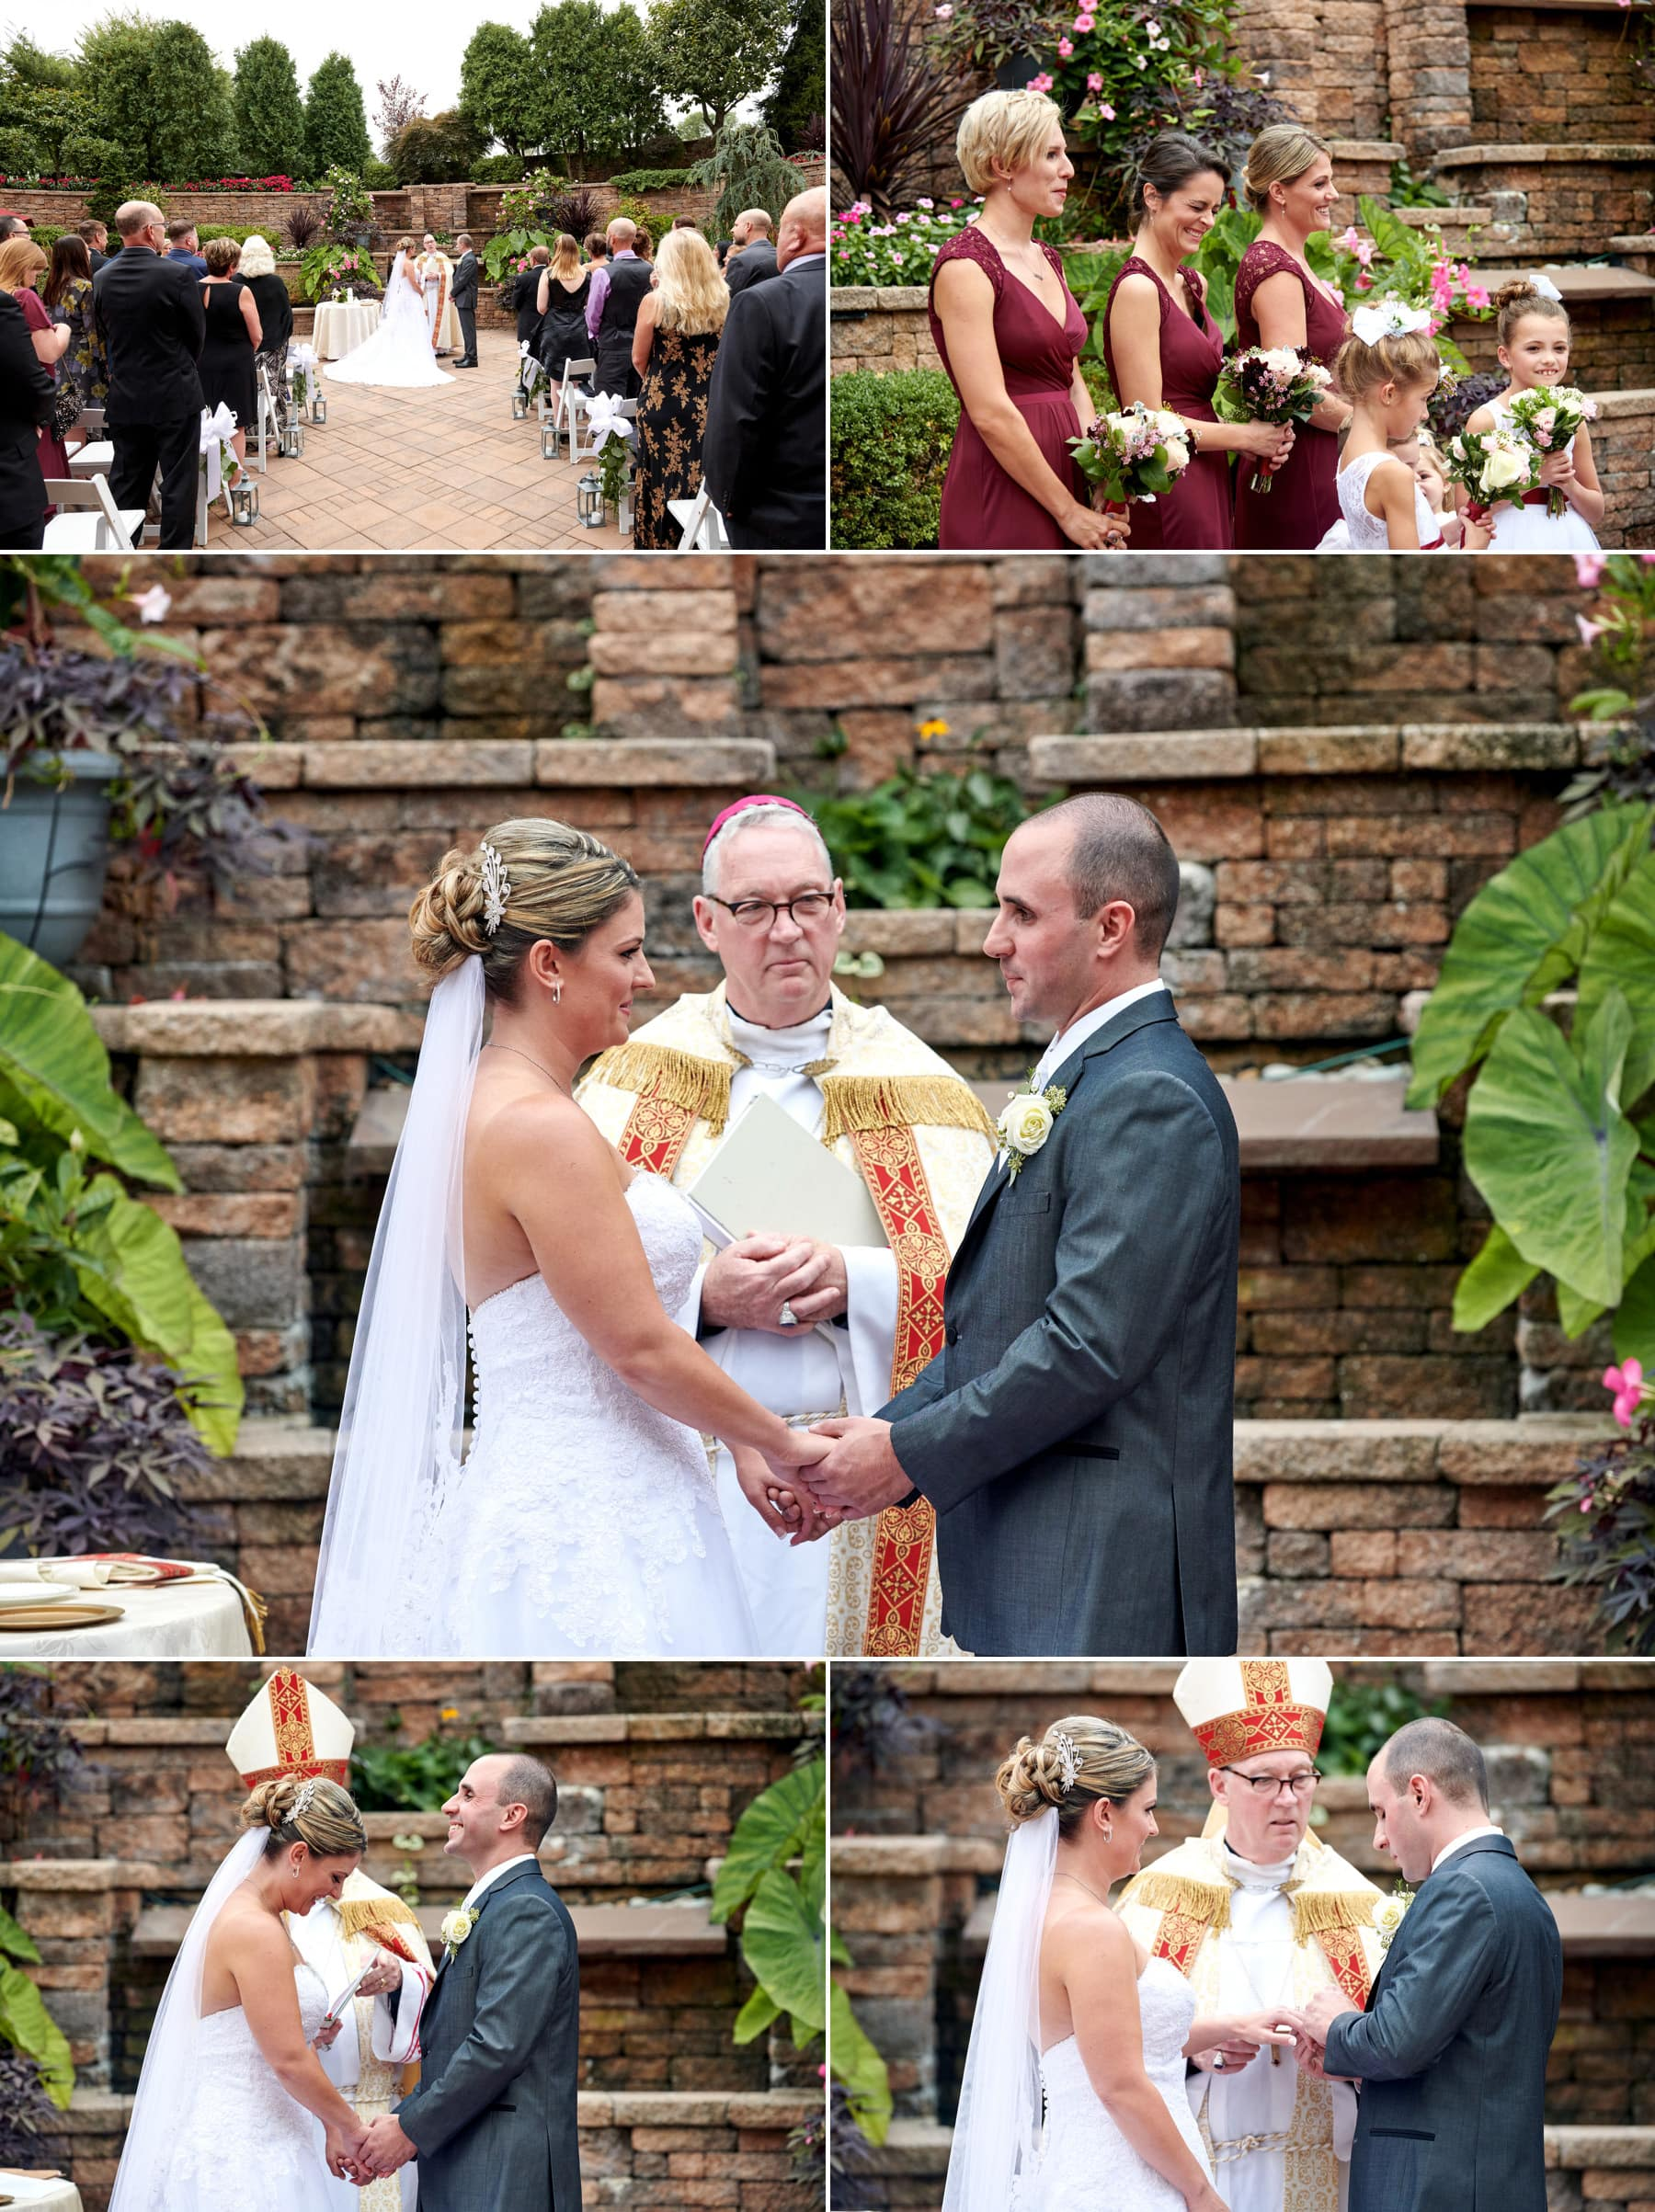 wedding ceremony photos at The Imperia